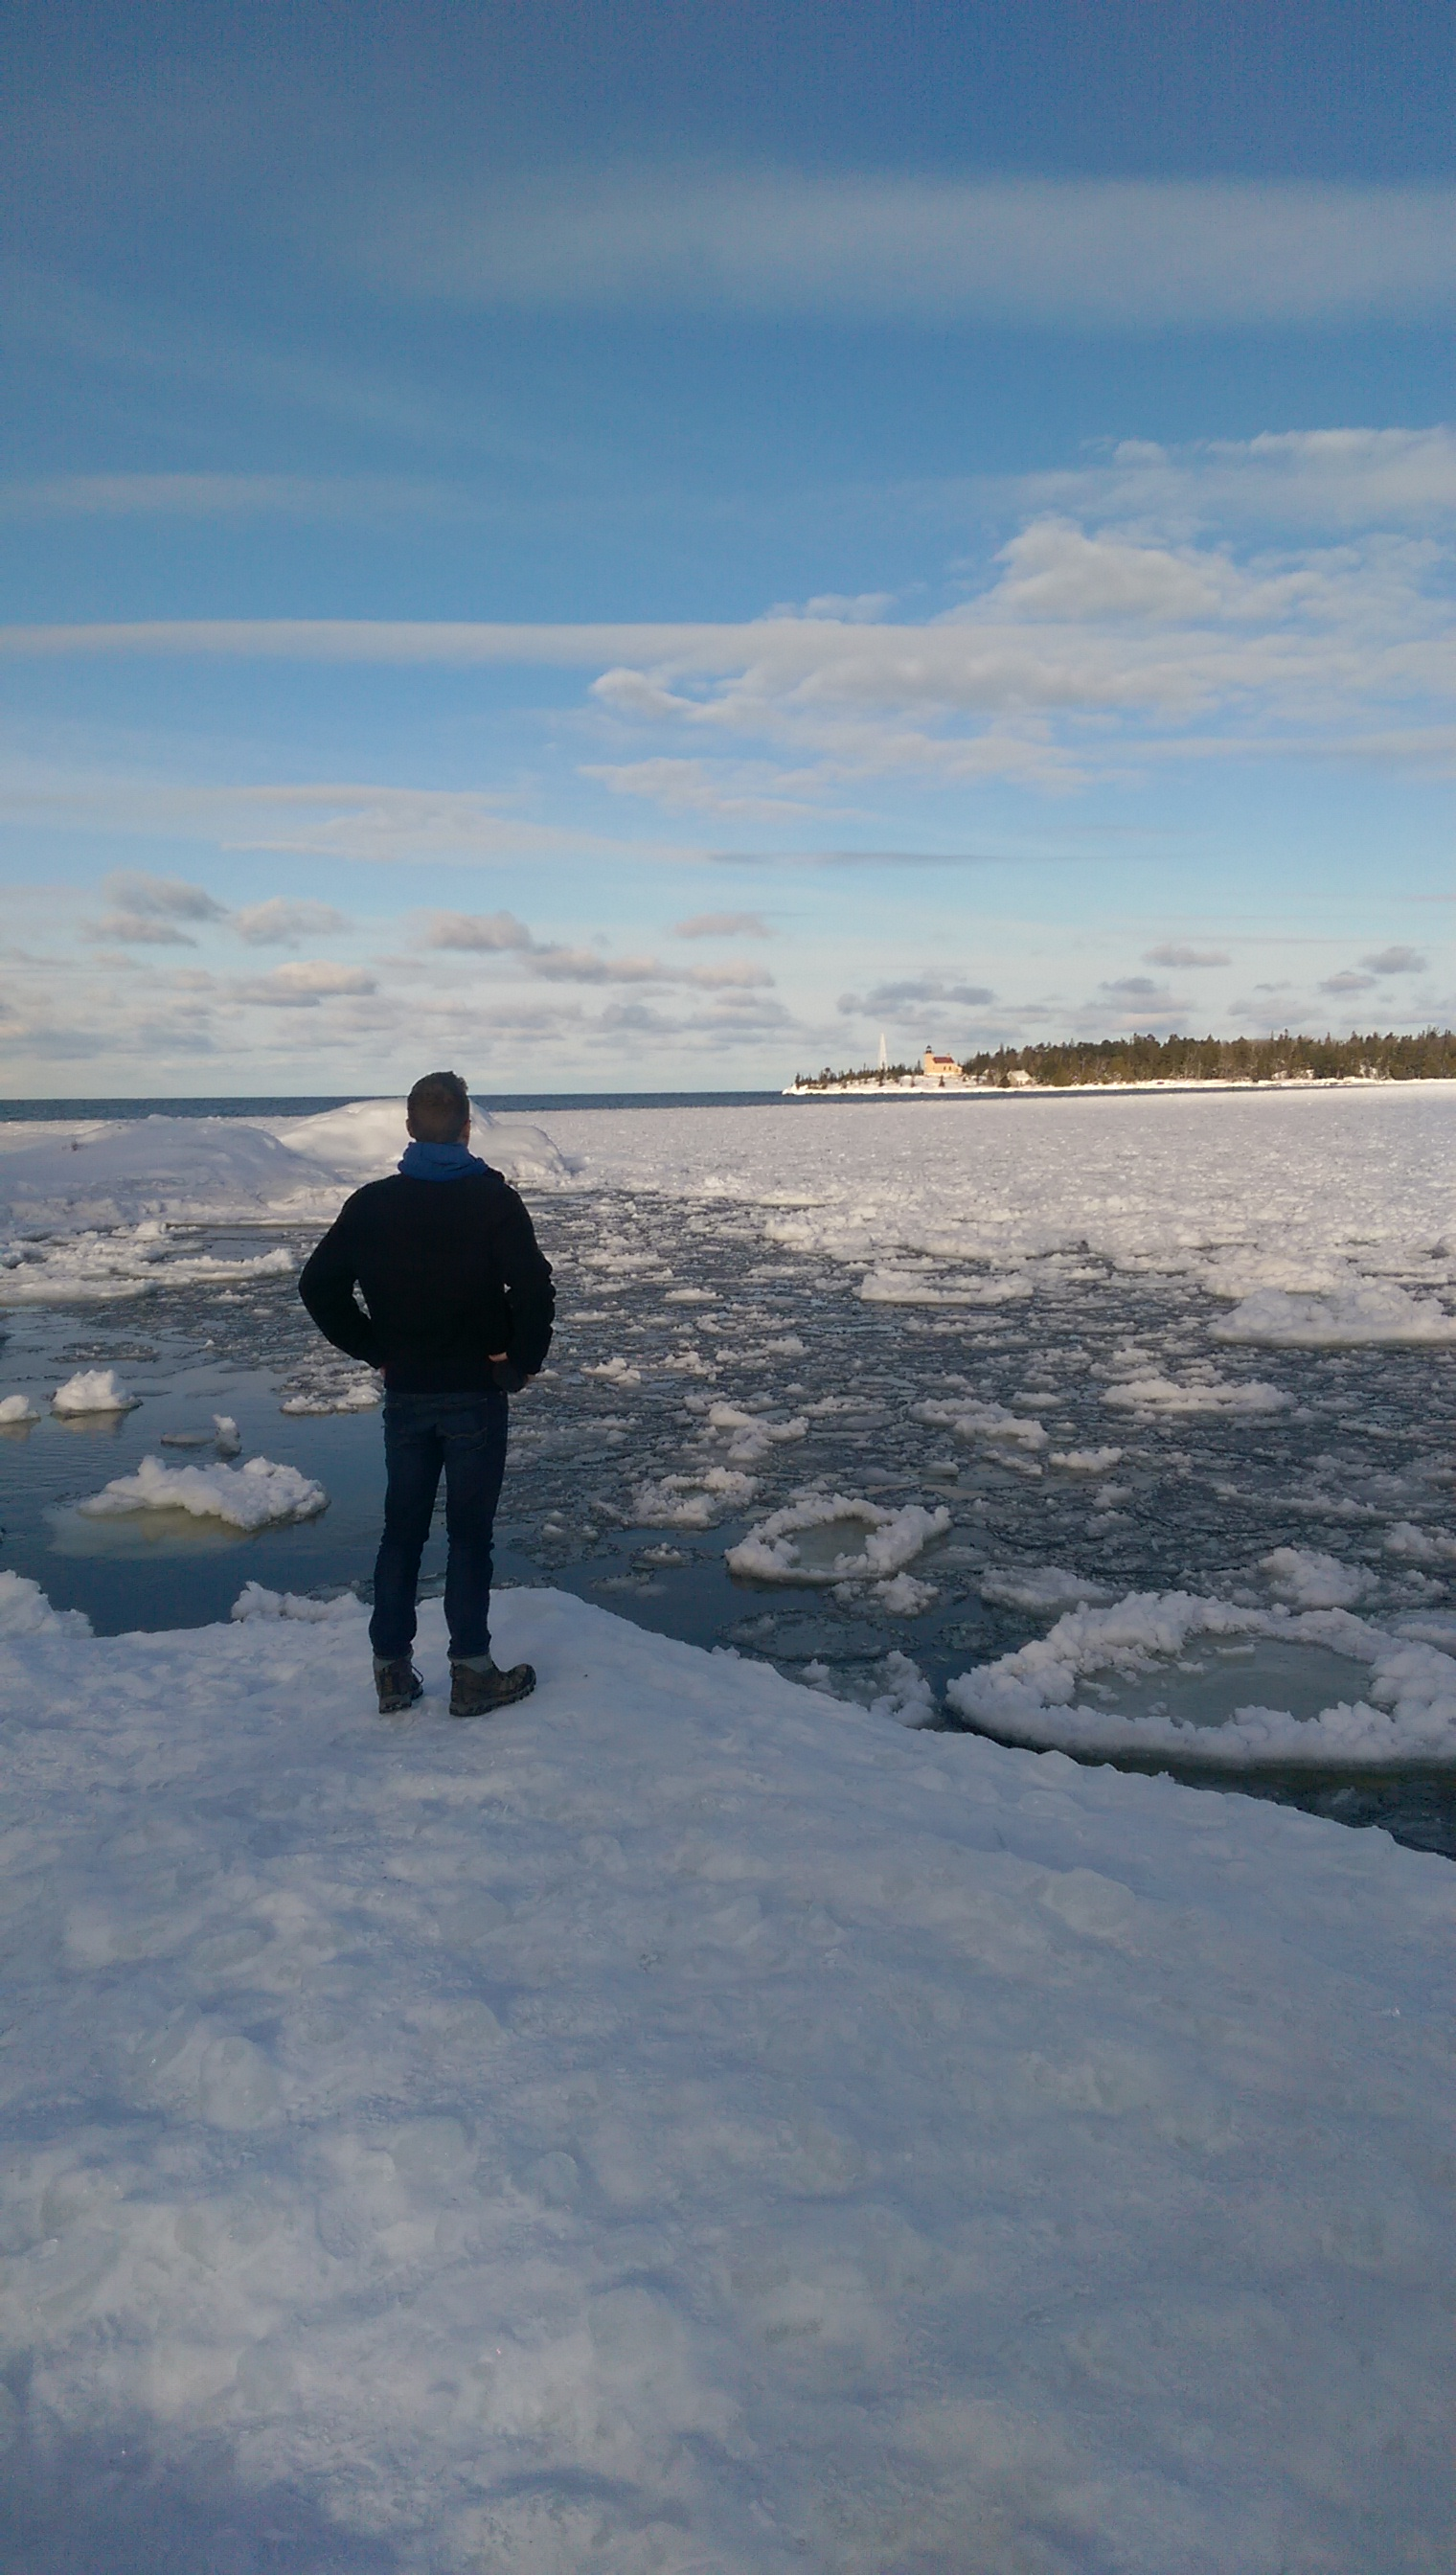 Admiring the icy waters of Copper Harbor